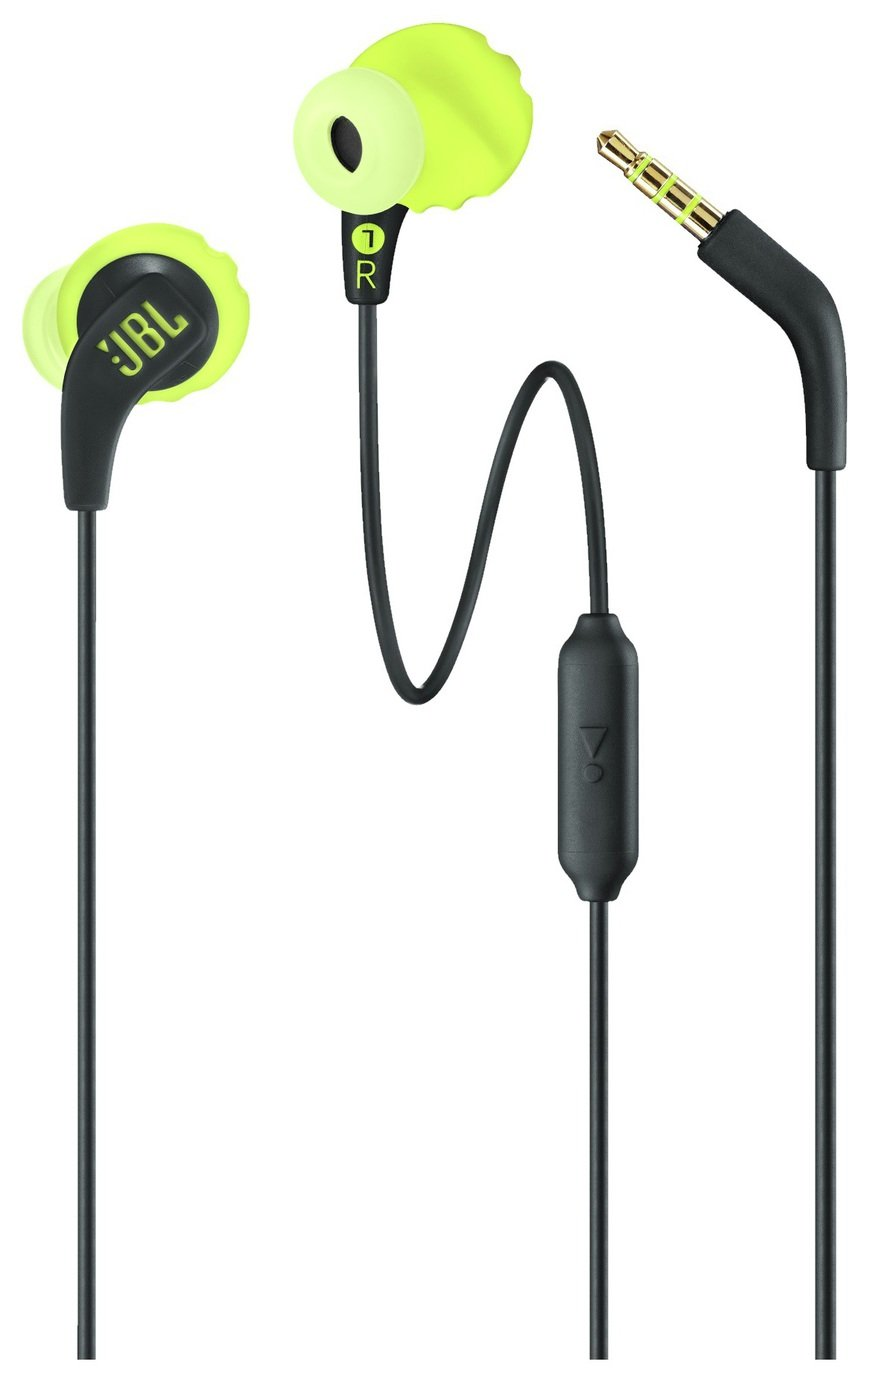 JBL Endurance Run Sports In-Ear Wired Headphones - Black